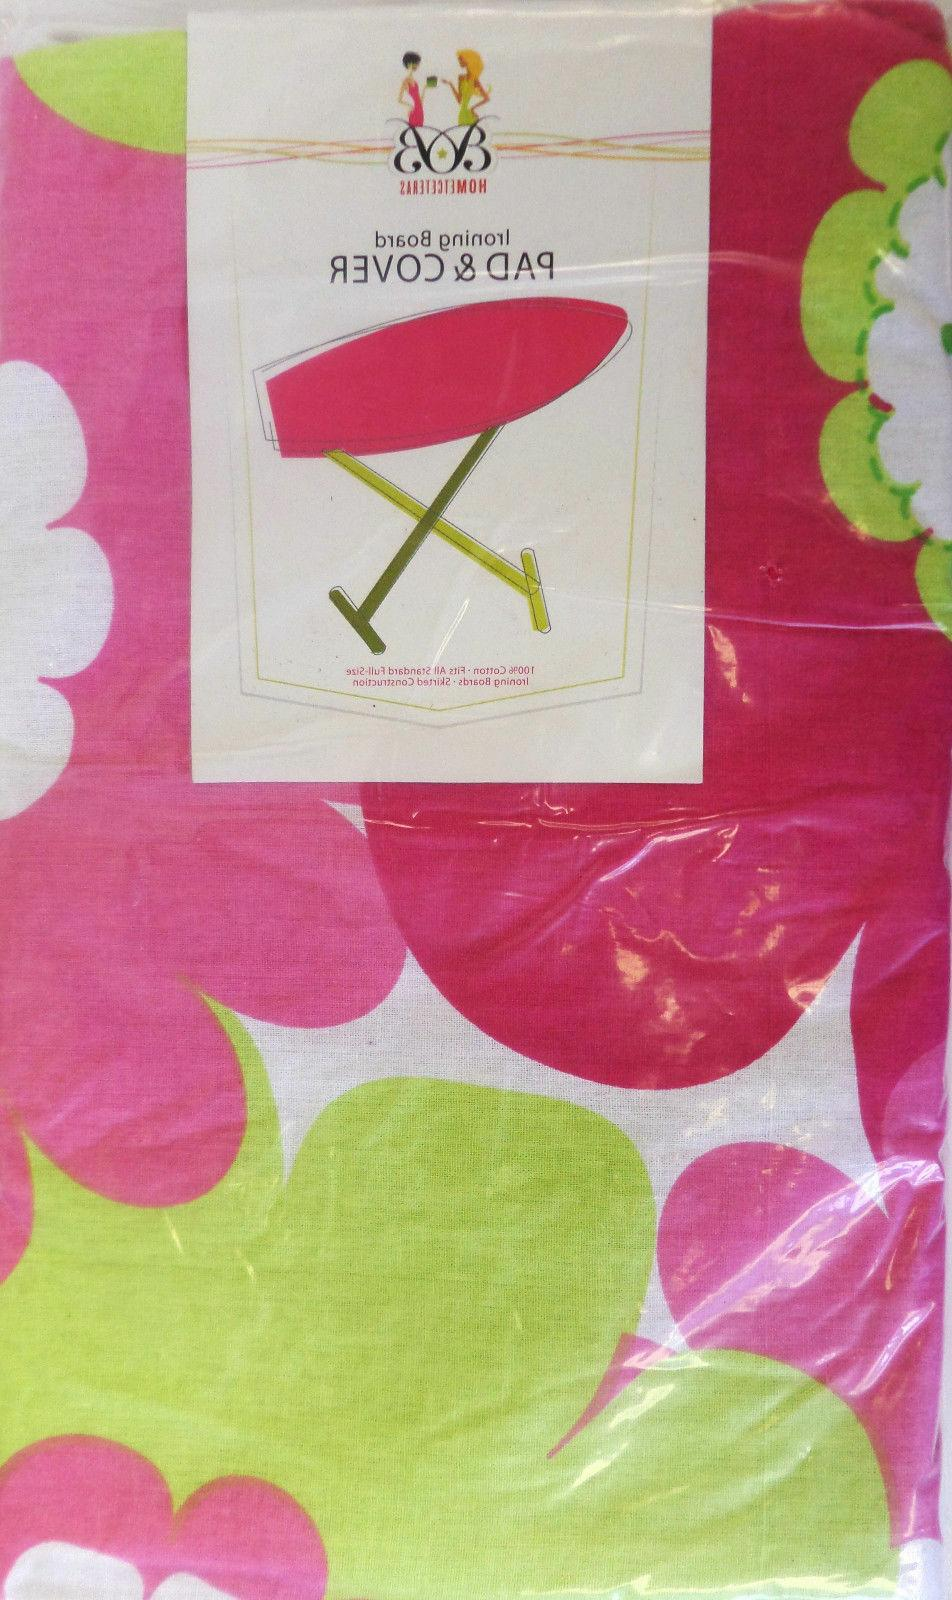 Ironing & Pad Floral, &